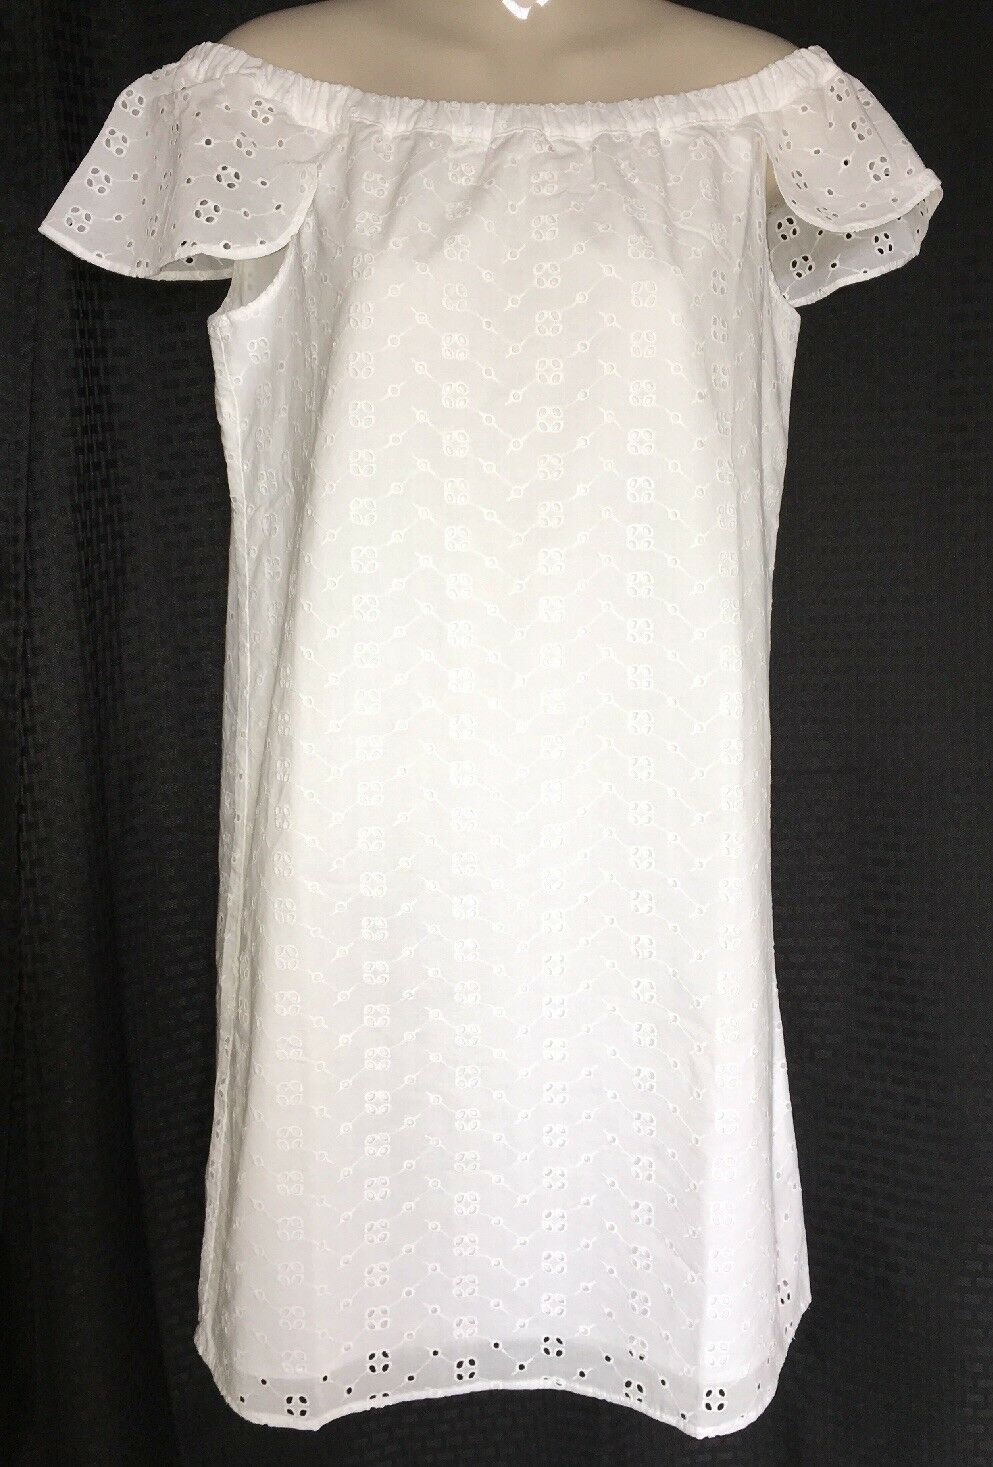 J Crew Dress Medium White Eyelet Off the Shoulder Shift NWT j0976  79.50